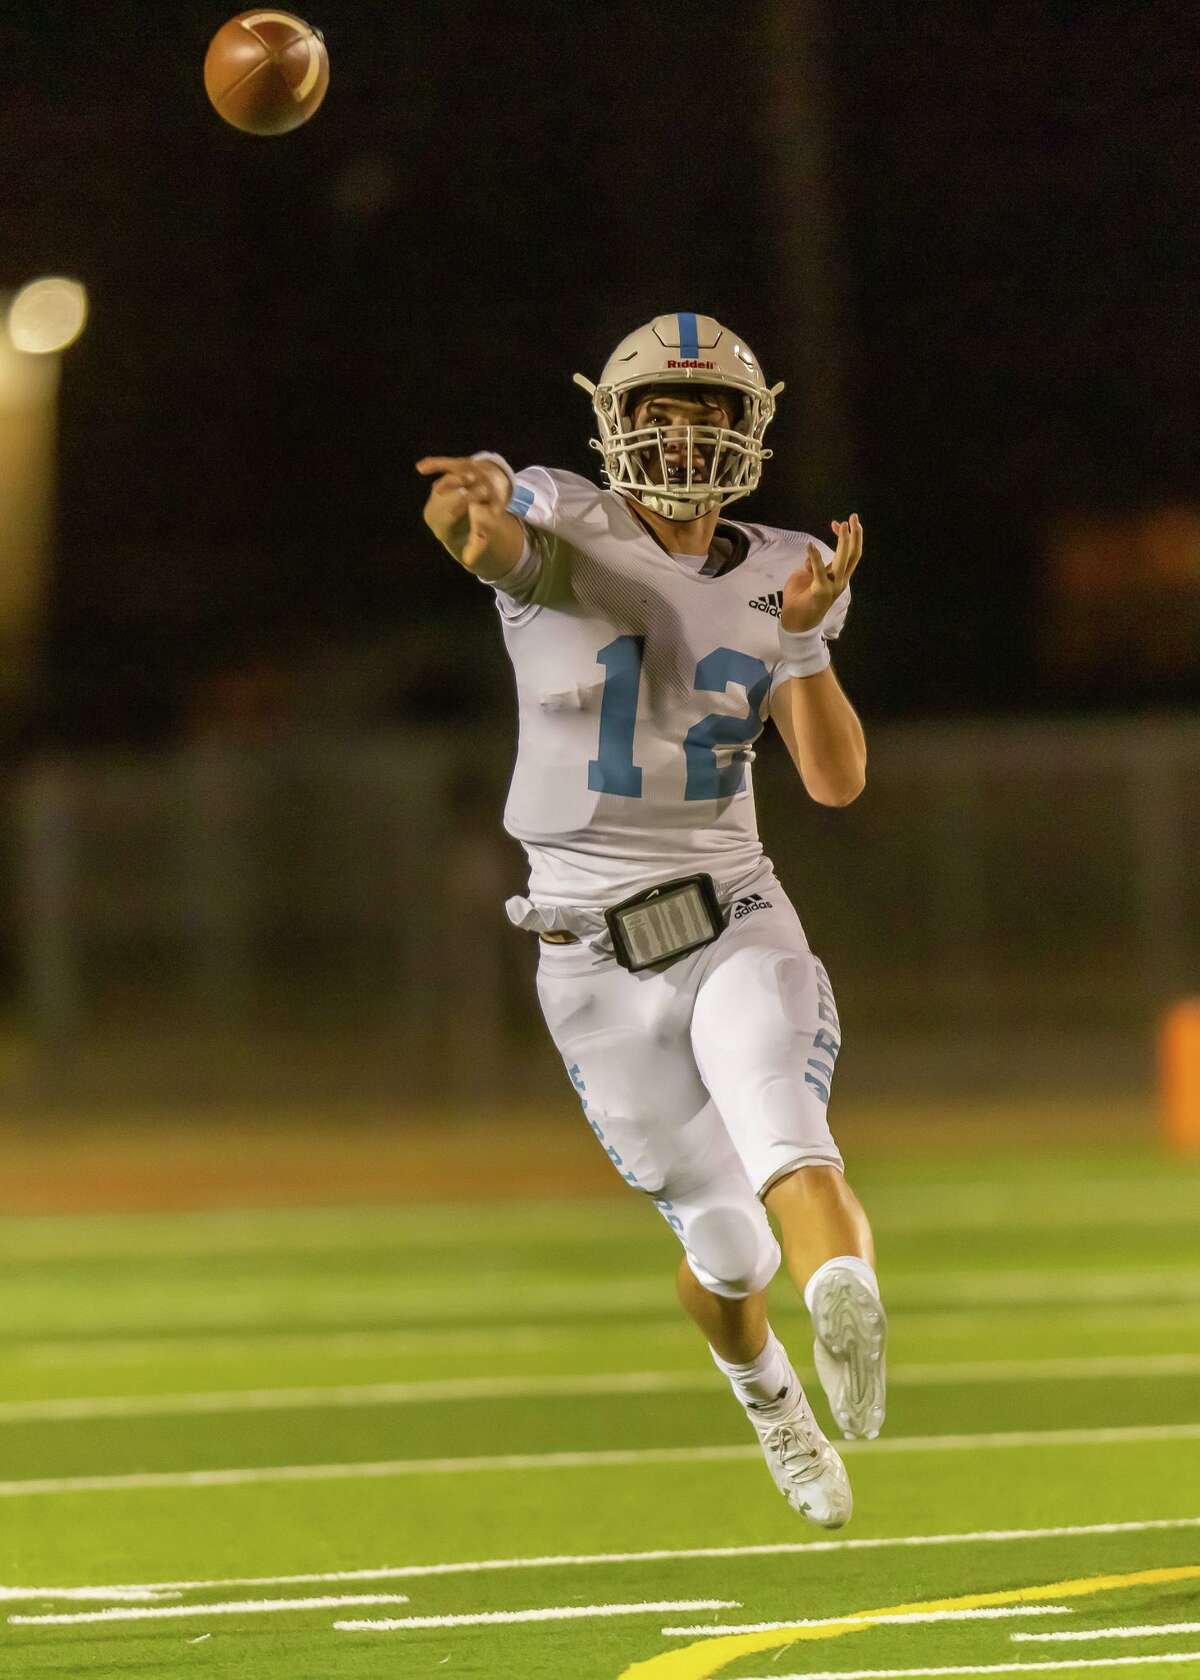 Cypress Christian School shutout Holy Cross of San Antonio 14-0 in the TAPPS Division III state semifinals Friday, Dec. 11, at Victoria Memorial Stadium in Victoria.